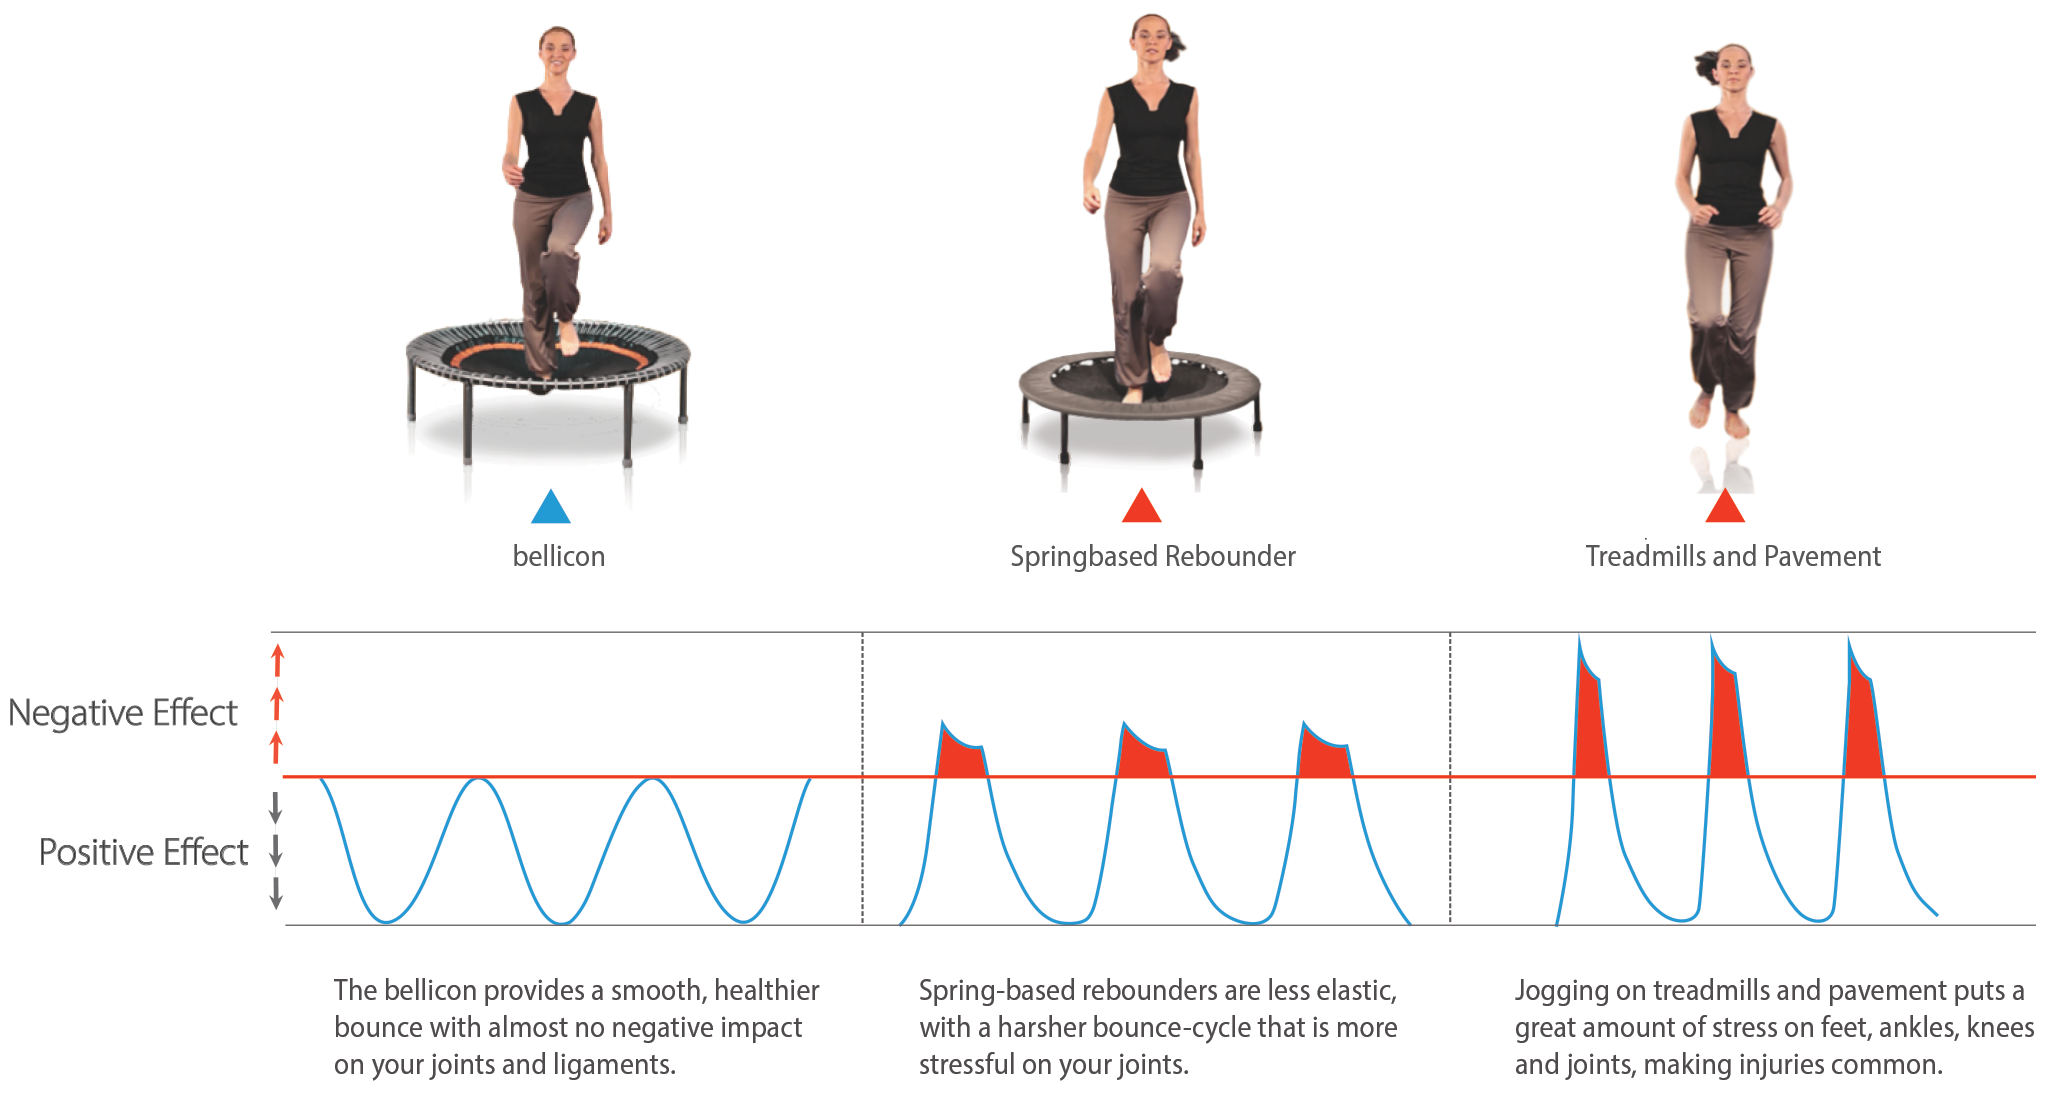 Impact on your body compared between the bellicon, a spring-based trampoline and the pavement